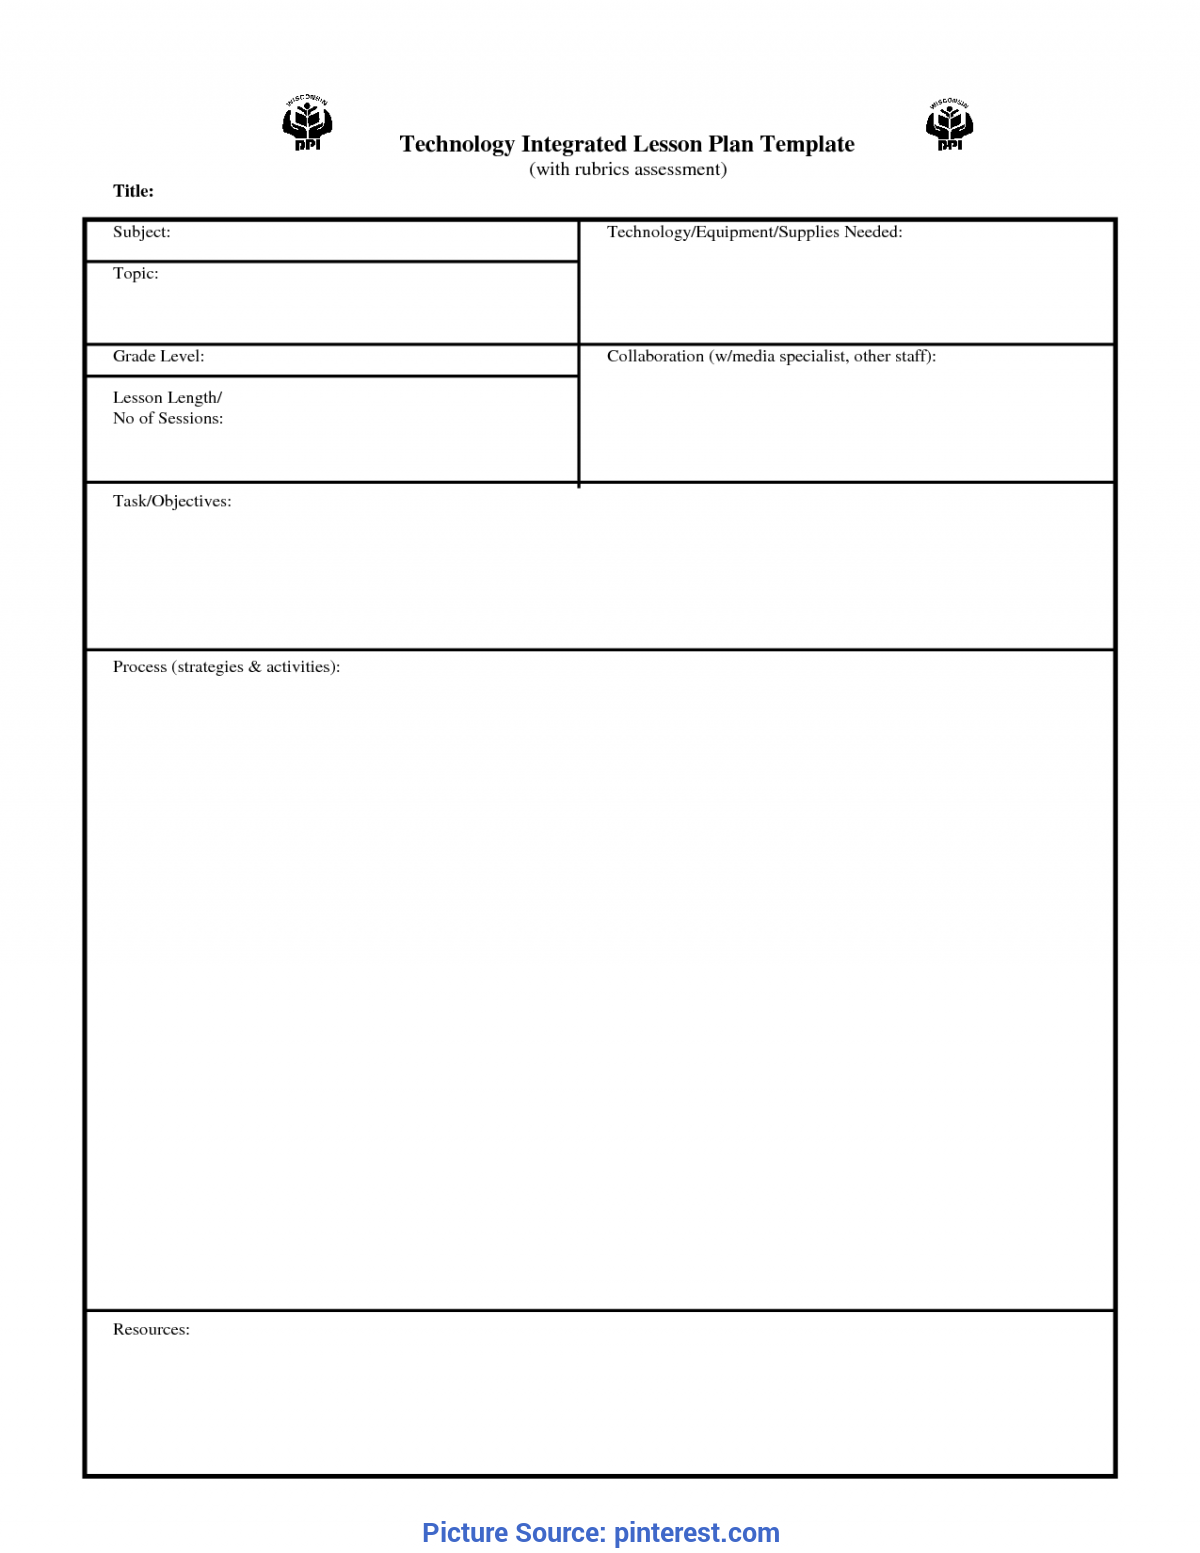 Special Teacher Lesson Plan Blank Templates This Blank, Customizable Printable Lesson Plan Form Is Ready To B